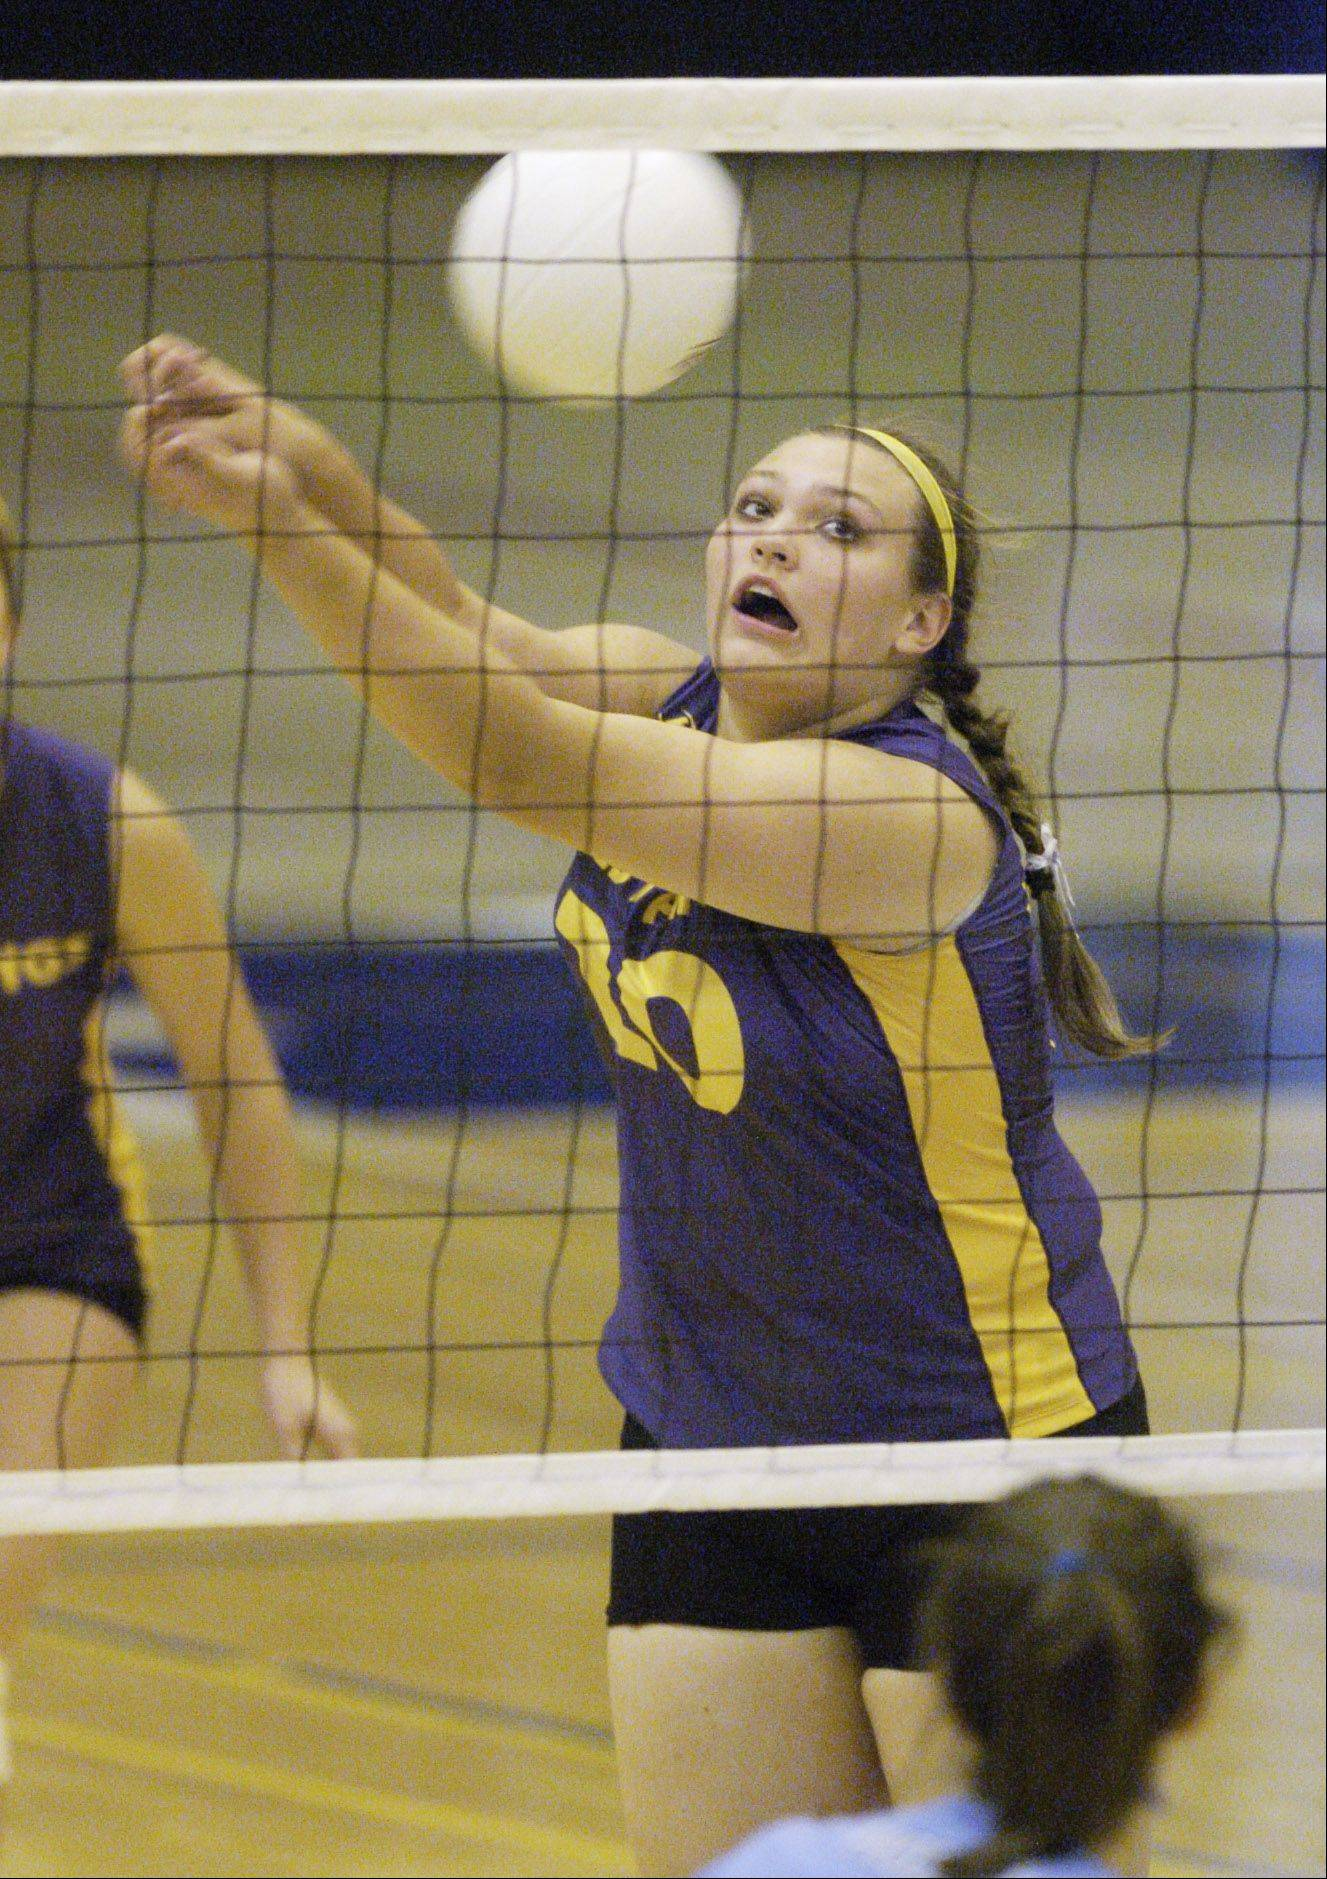 Morgan Keller excelled in three sports at Rolling Meadows, winning a total of 11 varsity letters.